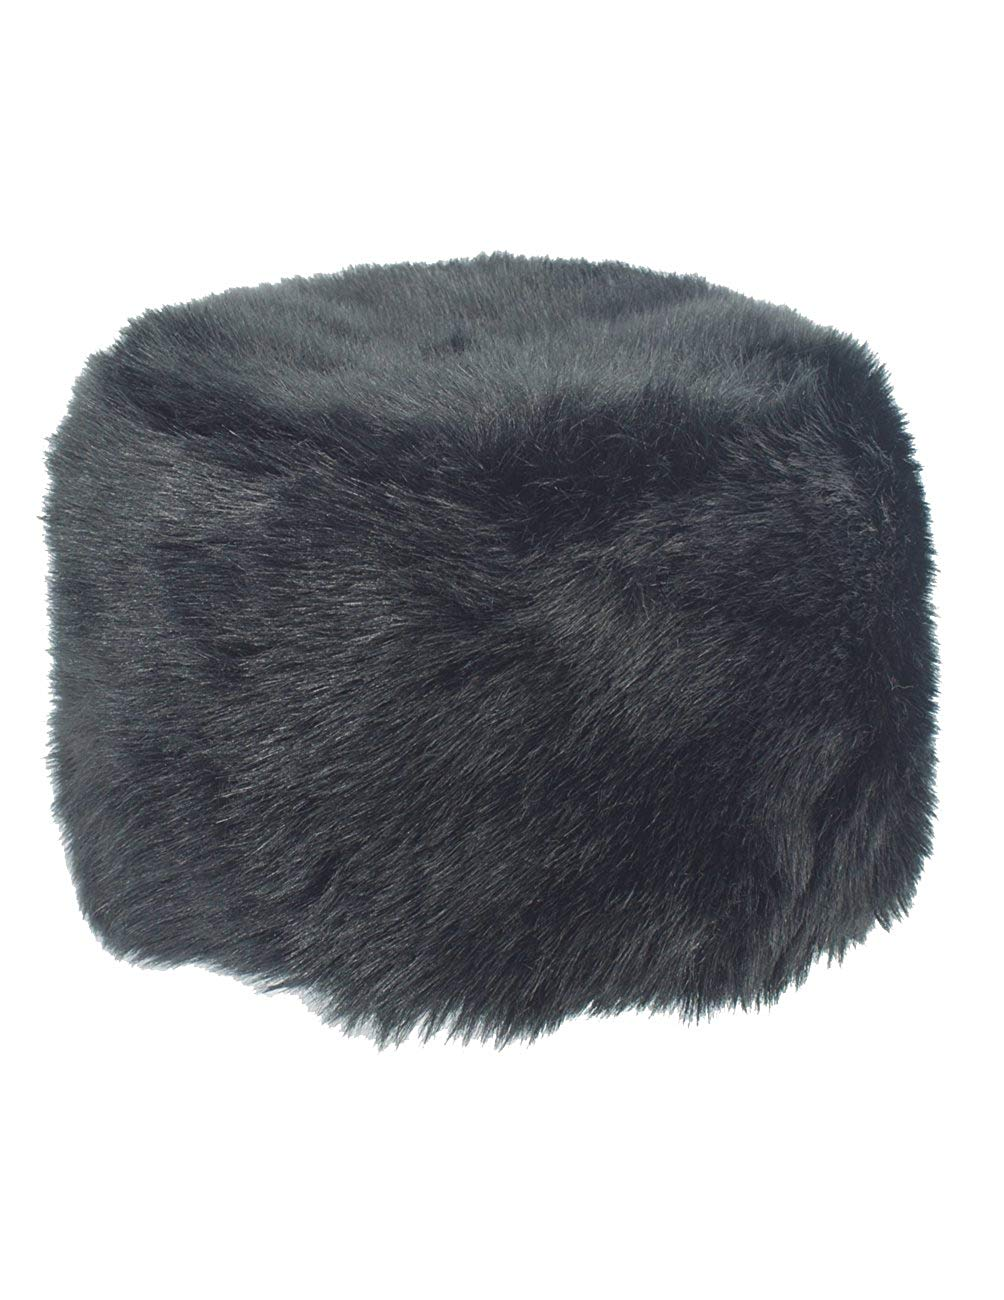 554c0940ec3 Get Quotations · Dahlia Women s Winter Faux Fur Russian Cossack Hat - Black